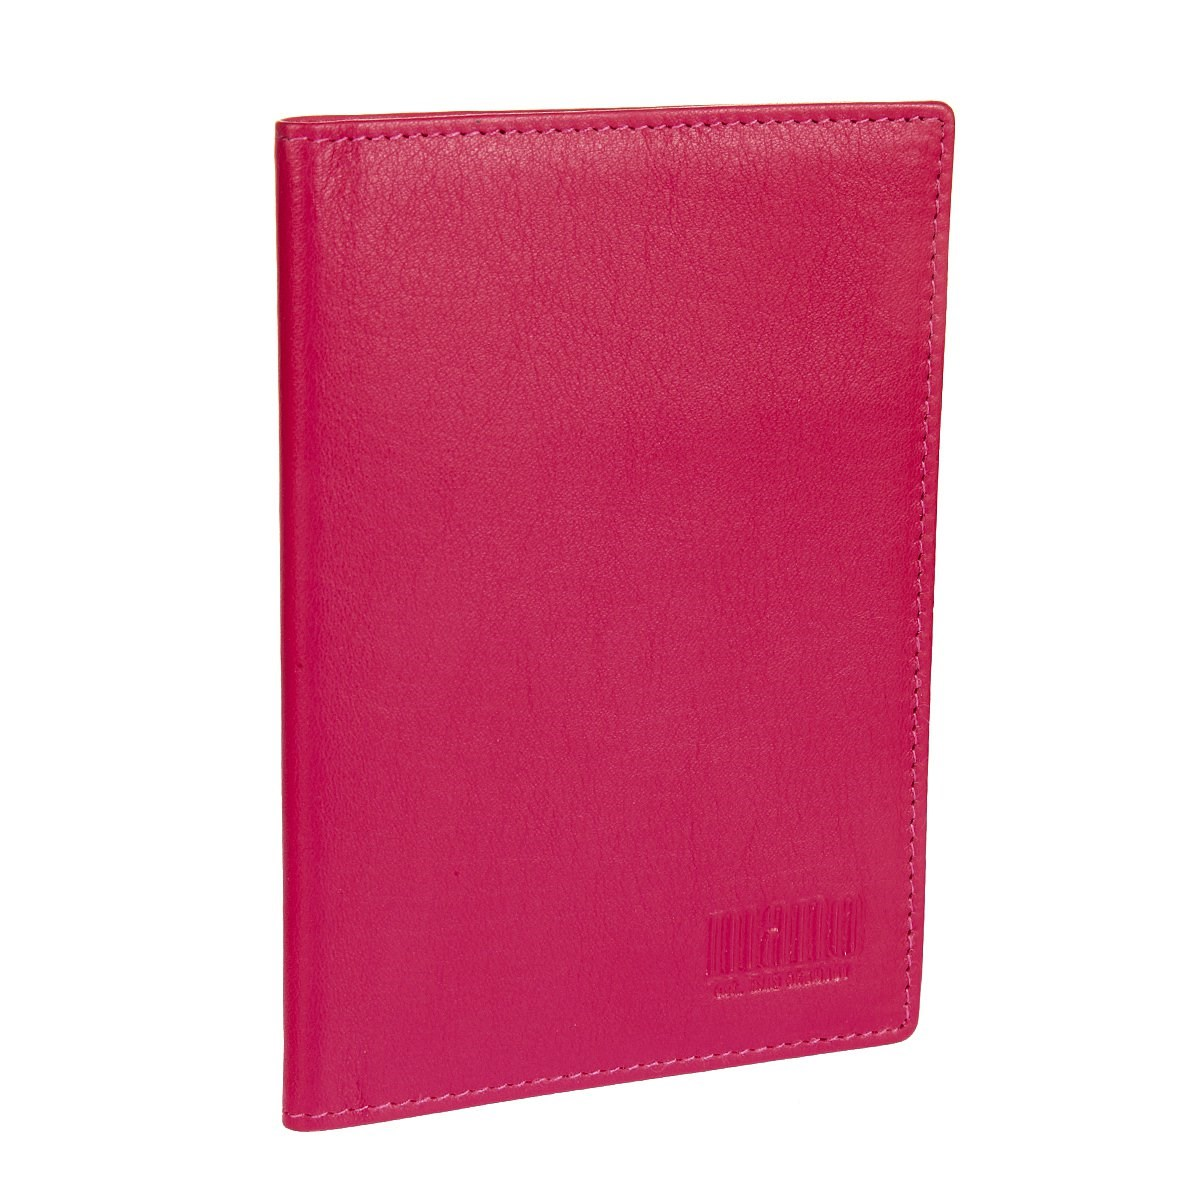 Passport covers Mano 20104 SETRU pink-cerise grace ababio beauty for ashes a garment of praise